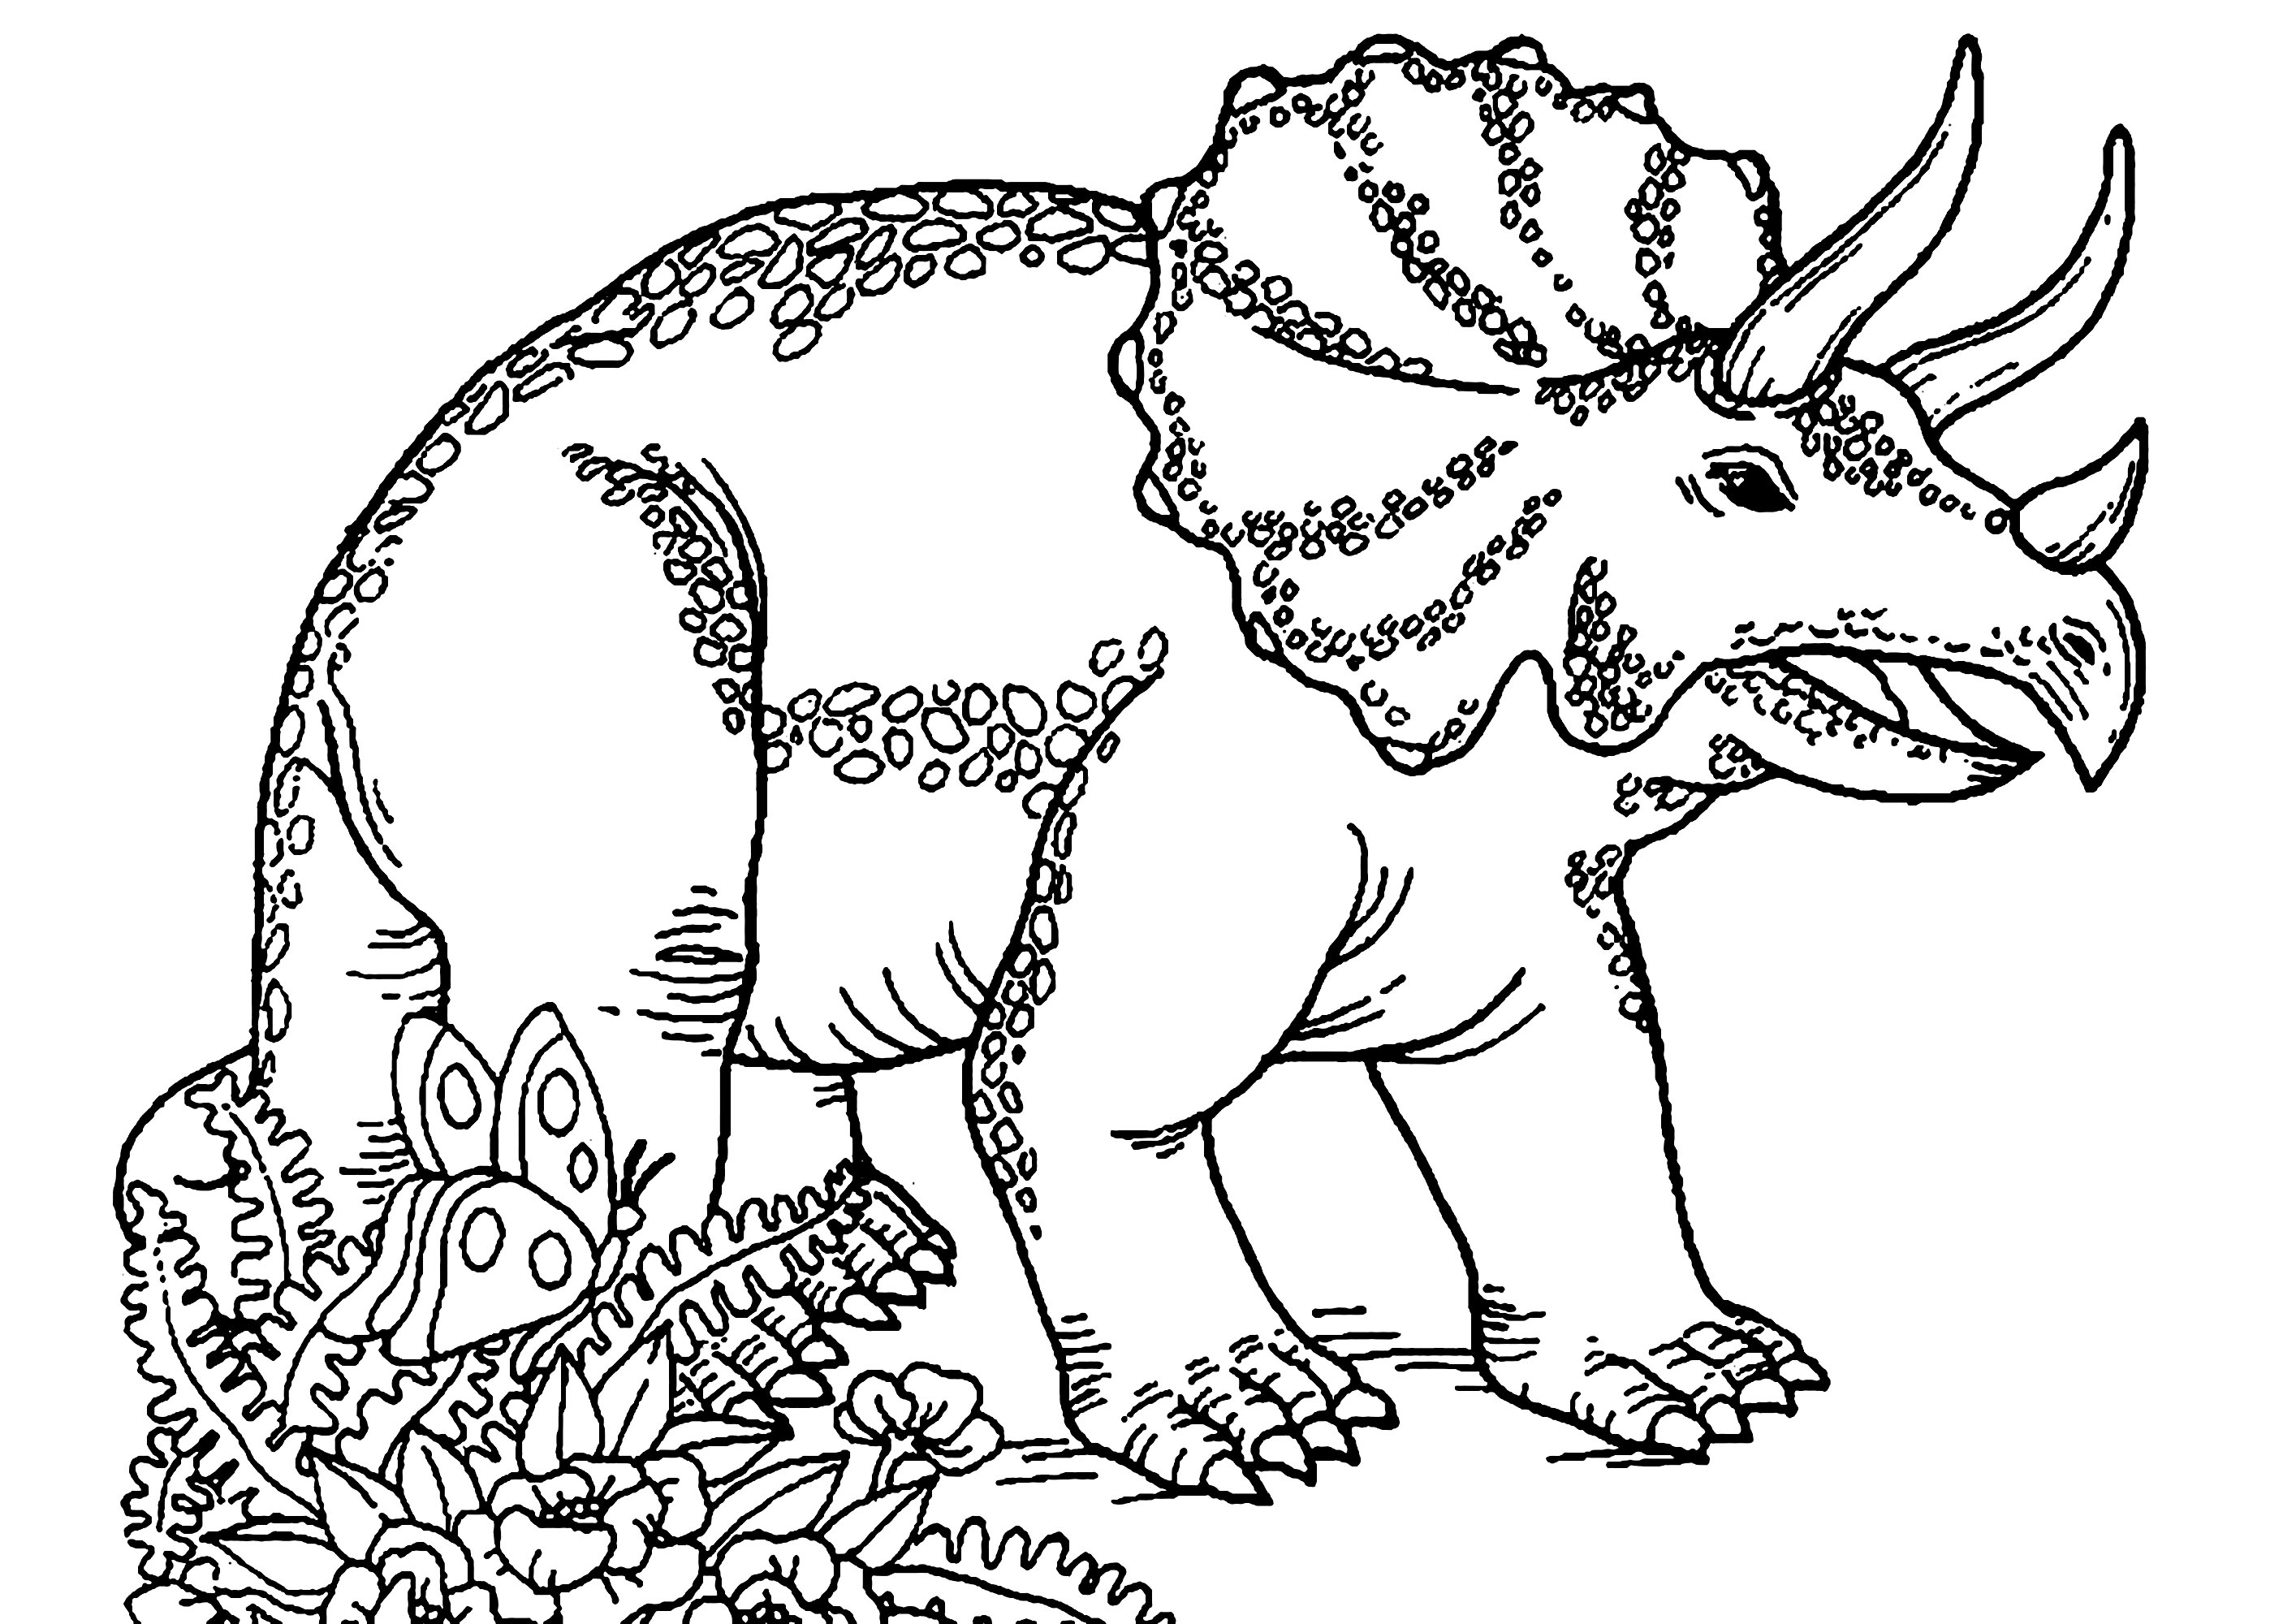 dinosaurs coloring page dinosaur colouring pages in the playroom page coloring dinosaurs